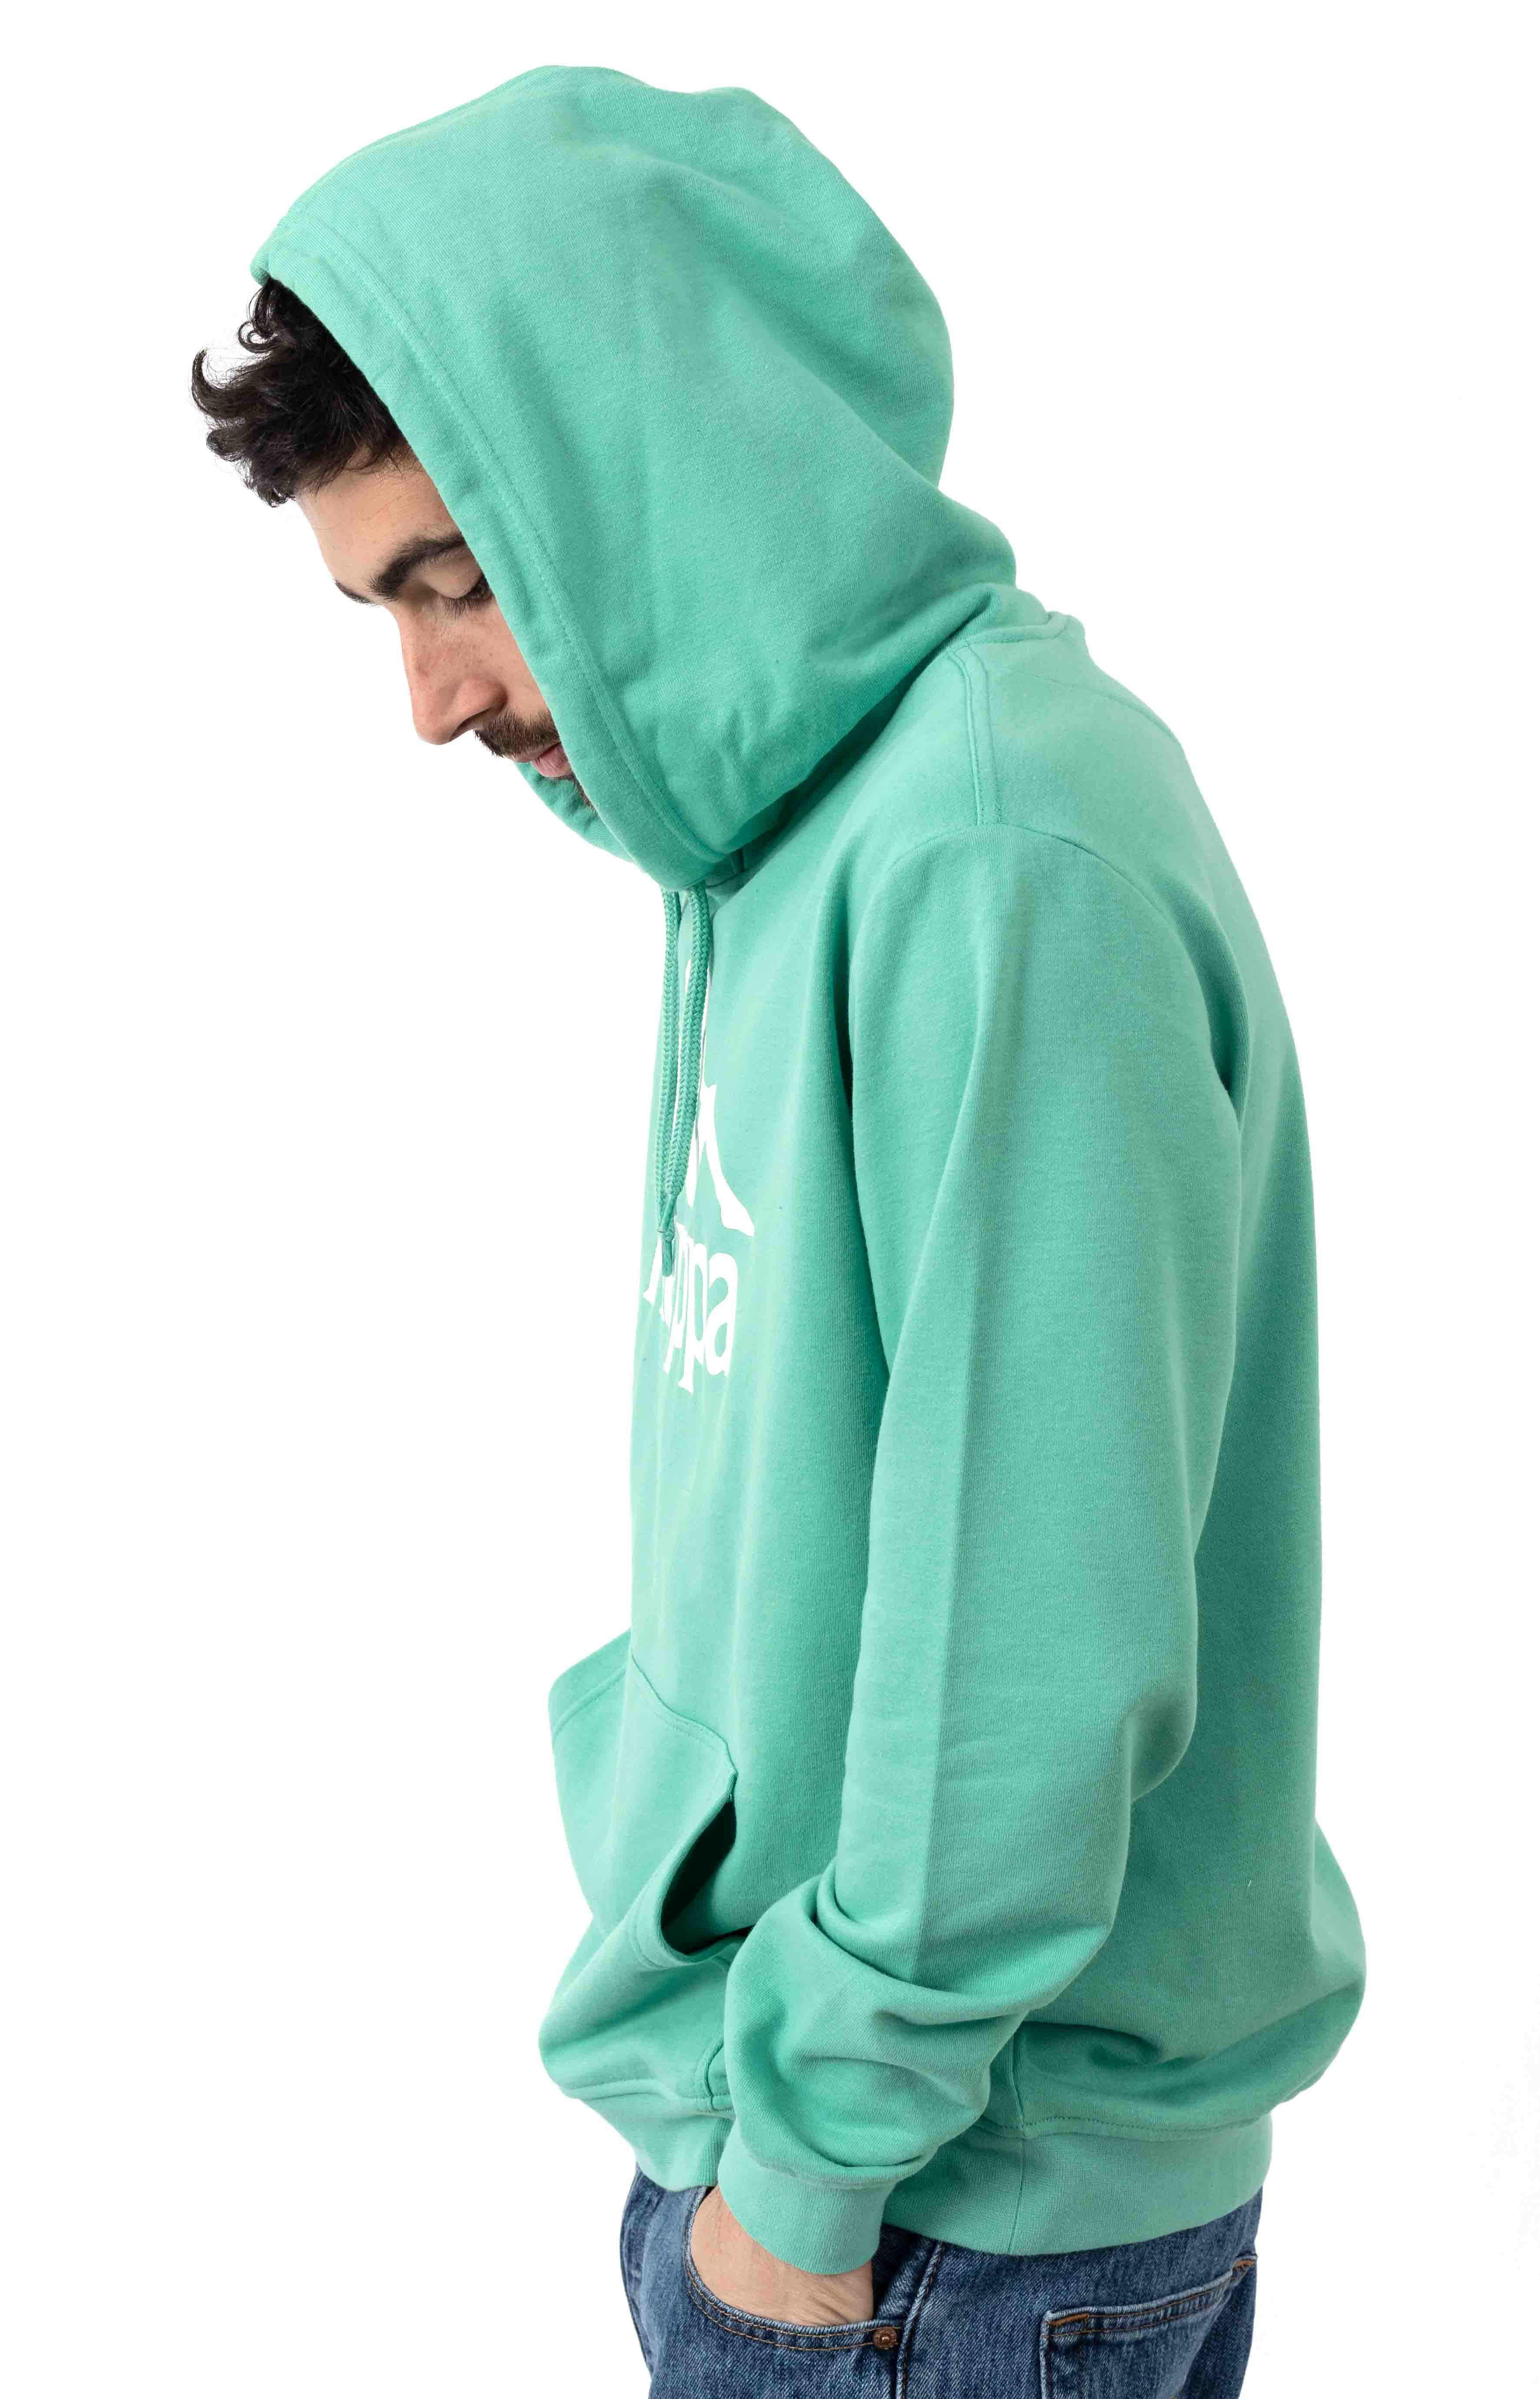 Authentic Zimim Pullover Hoodie - Green/White 2